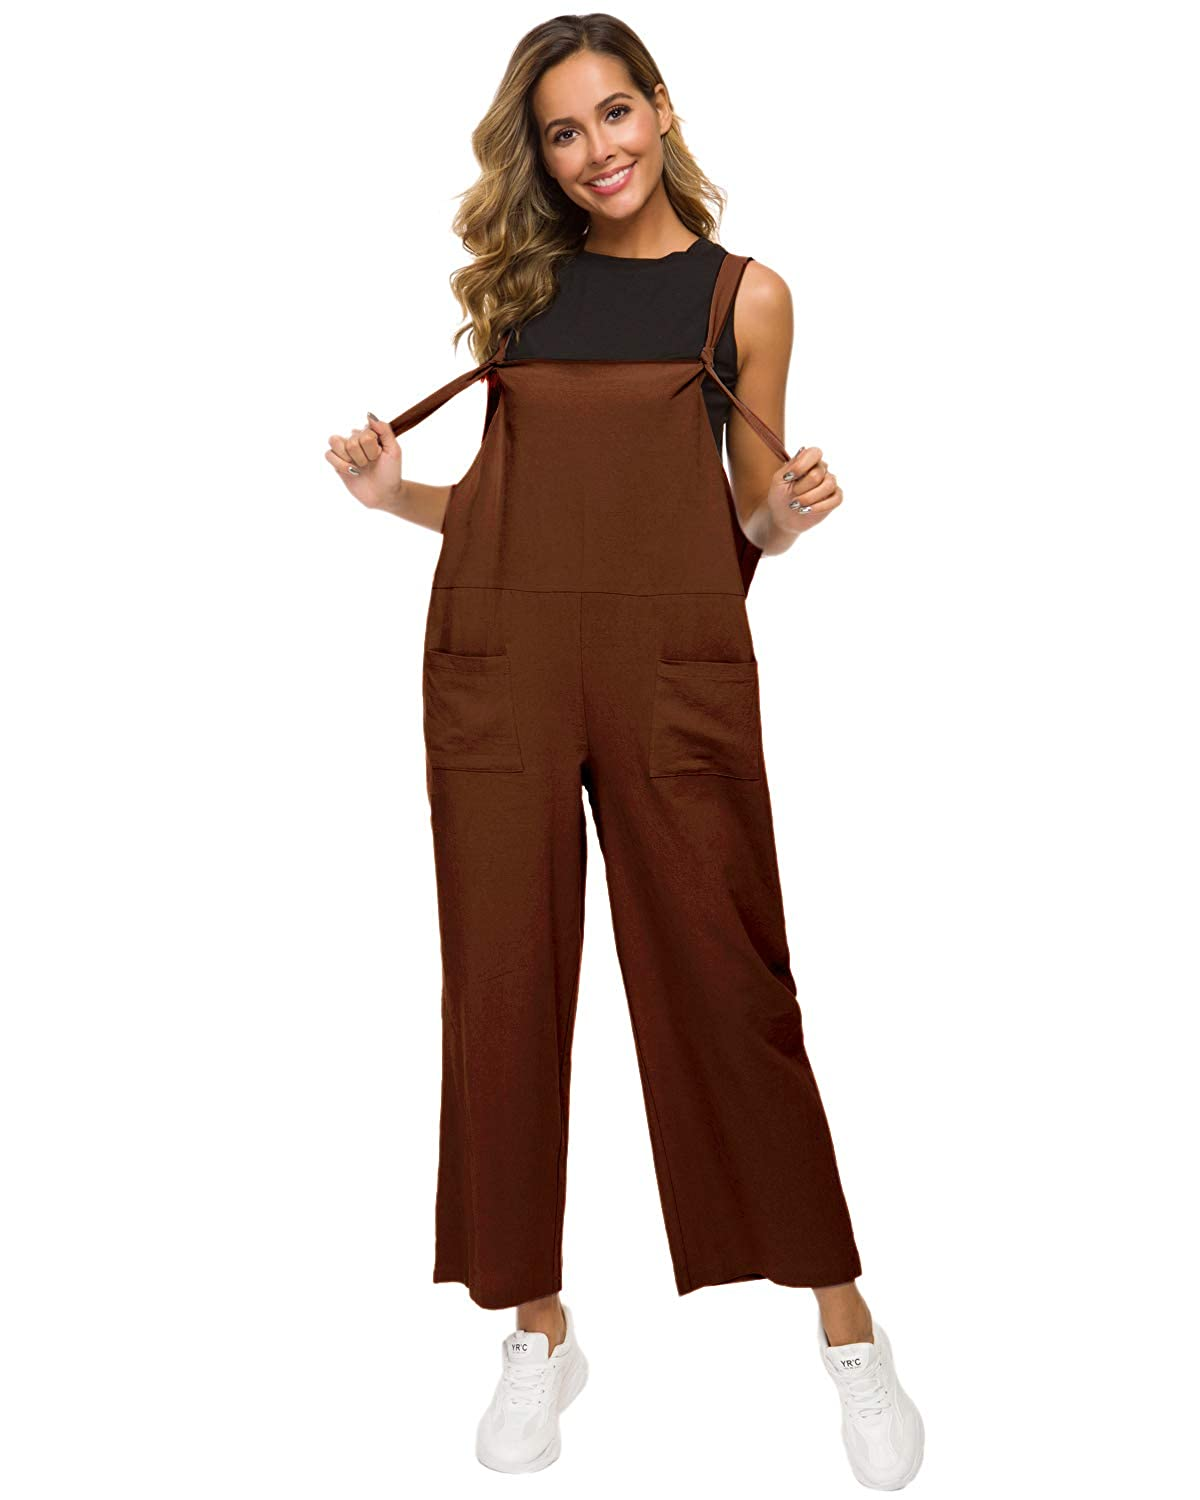 MINTLIMIT Women Jumpsuit Linen Loose Overall Sleeveless Strap Rompers Baggy Playsuit Wide Leg Harem Pants Dungarees